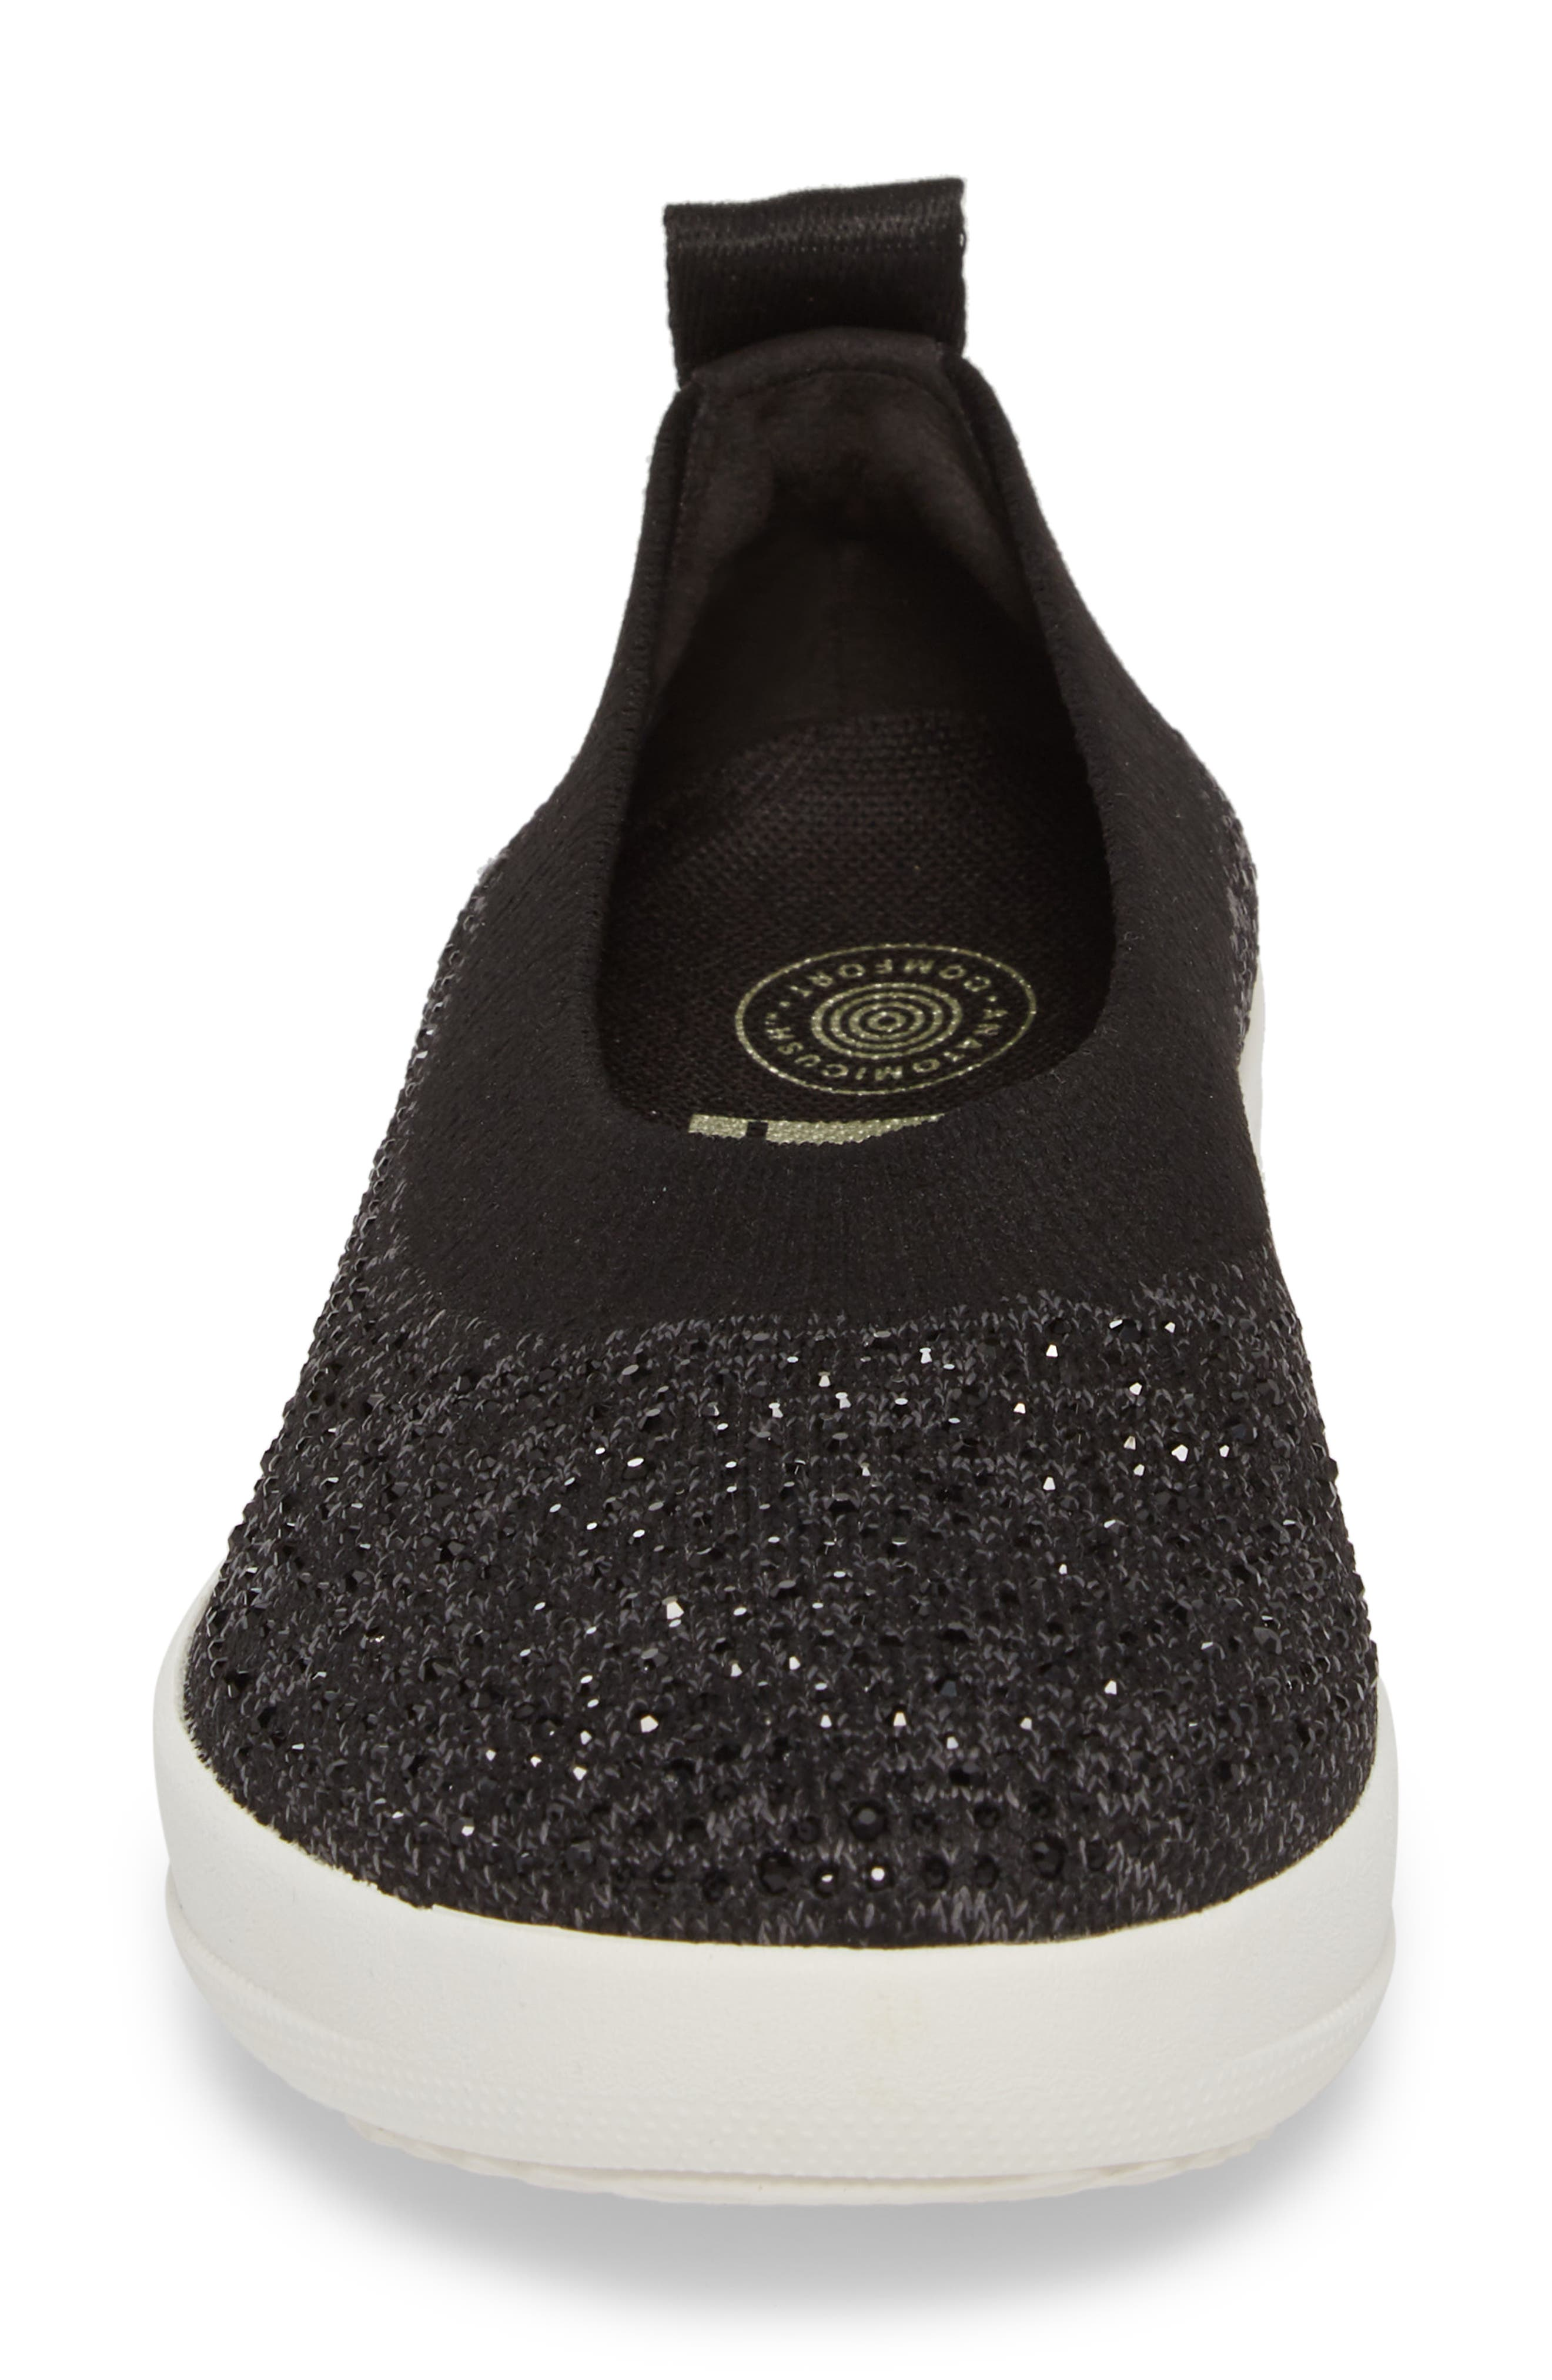 Uberknit Slip-On Sneaker,                             Alternate thumbnail 4, color,                             BLACK/ SOFT GREY